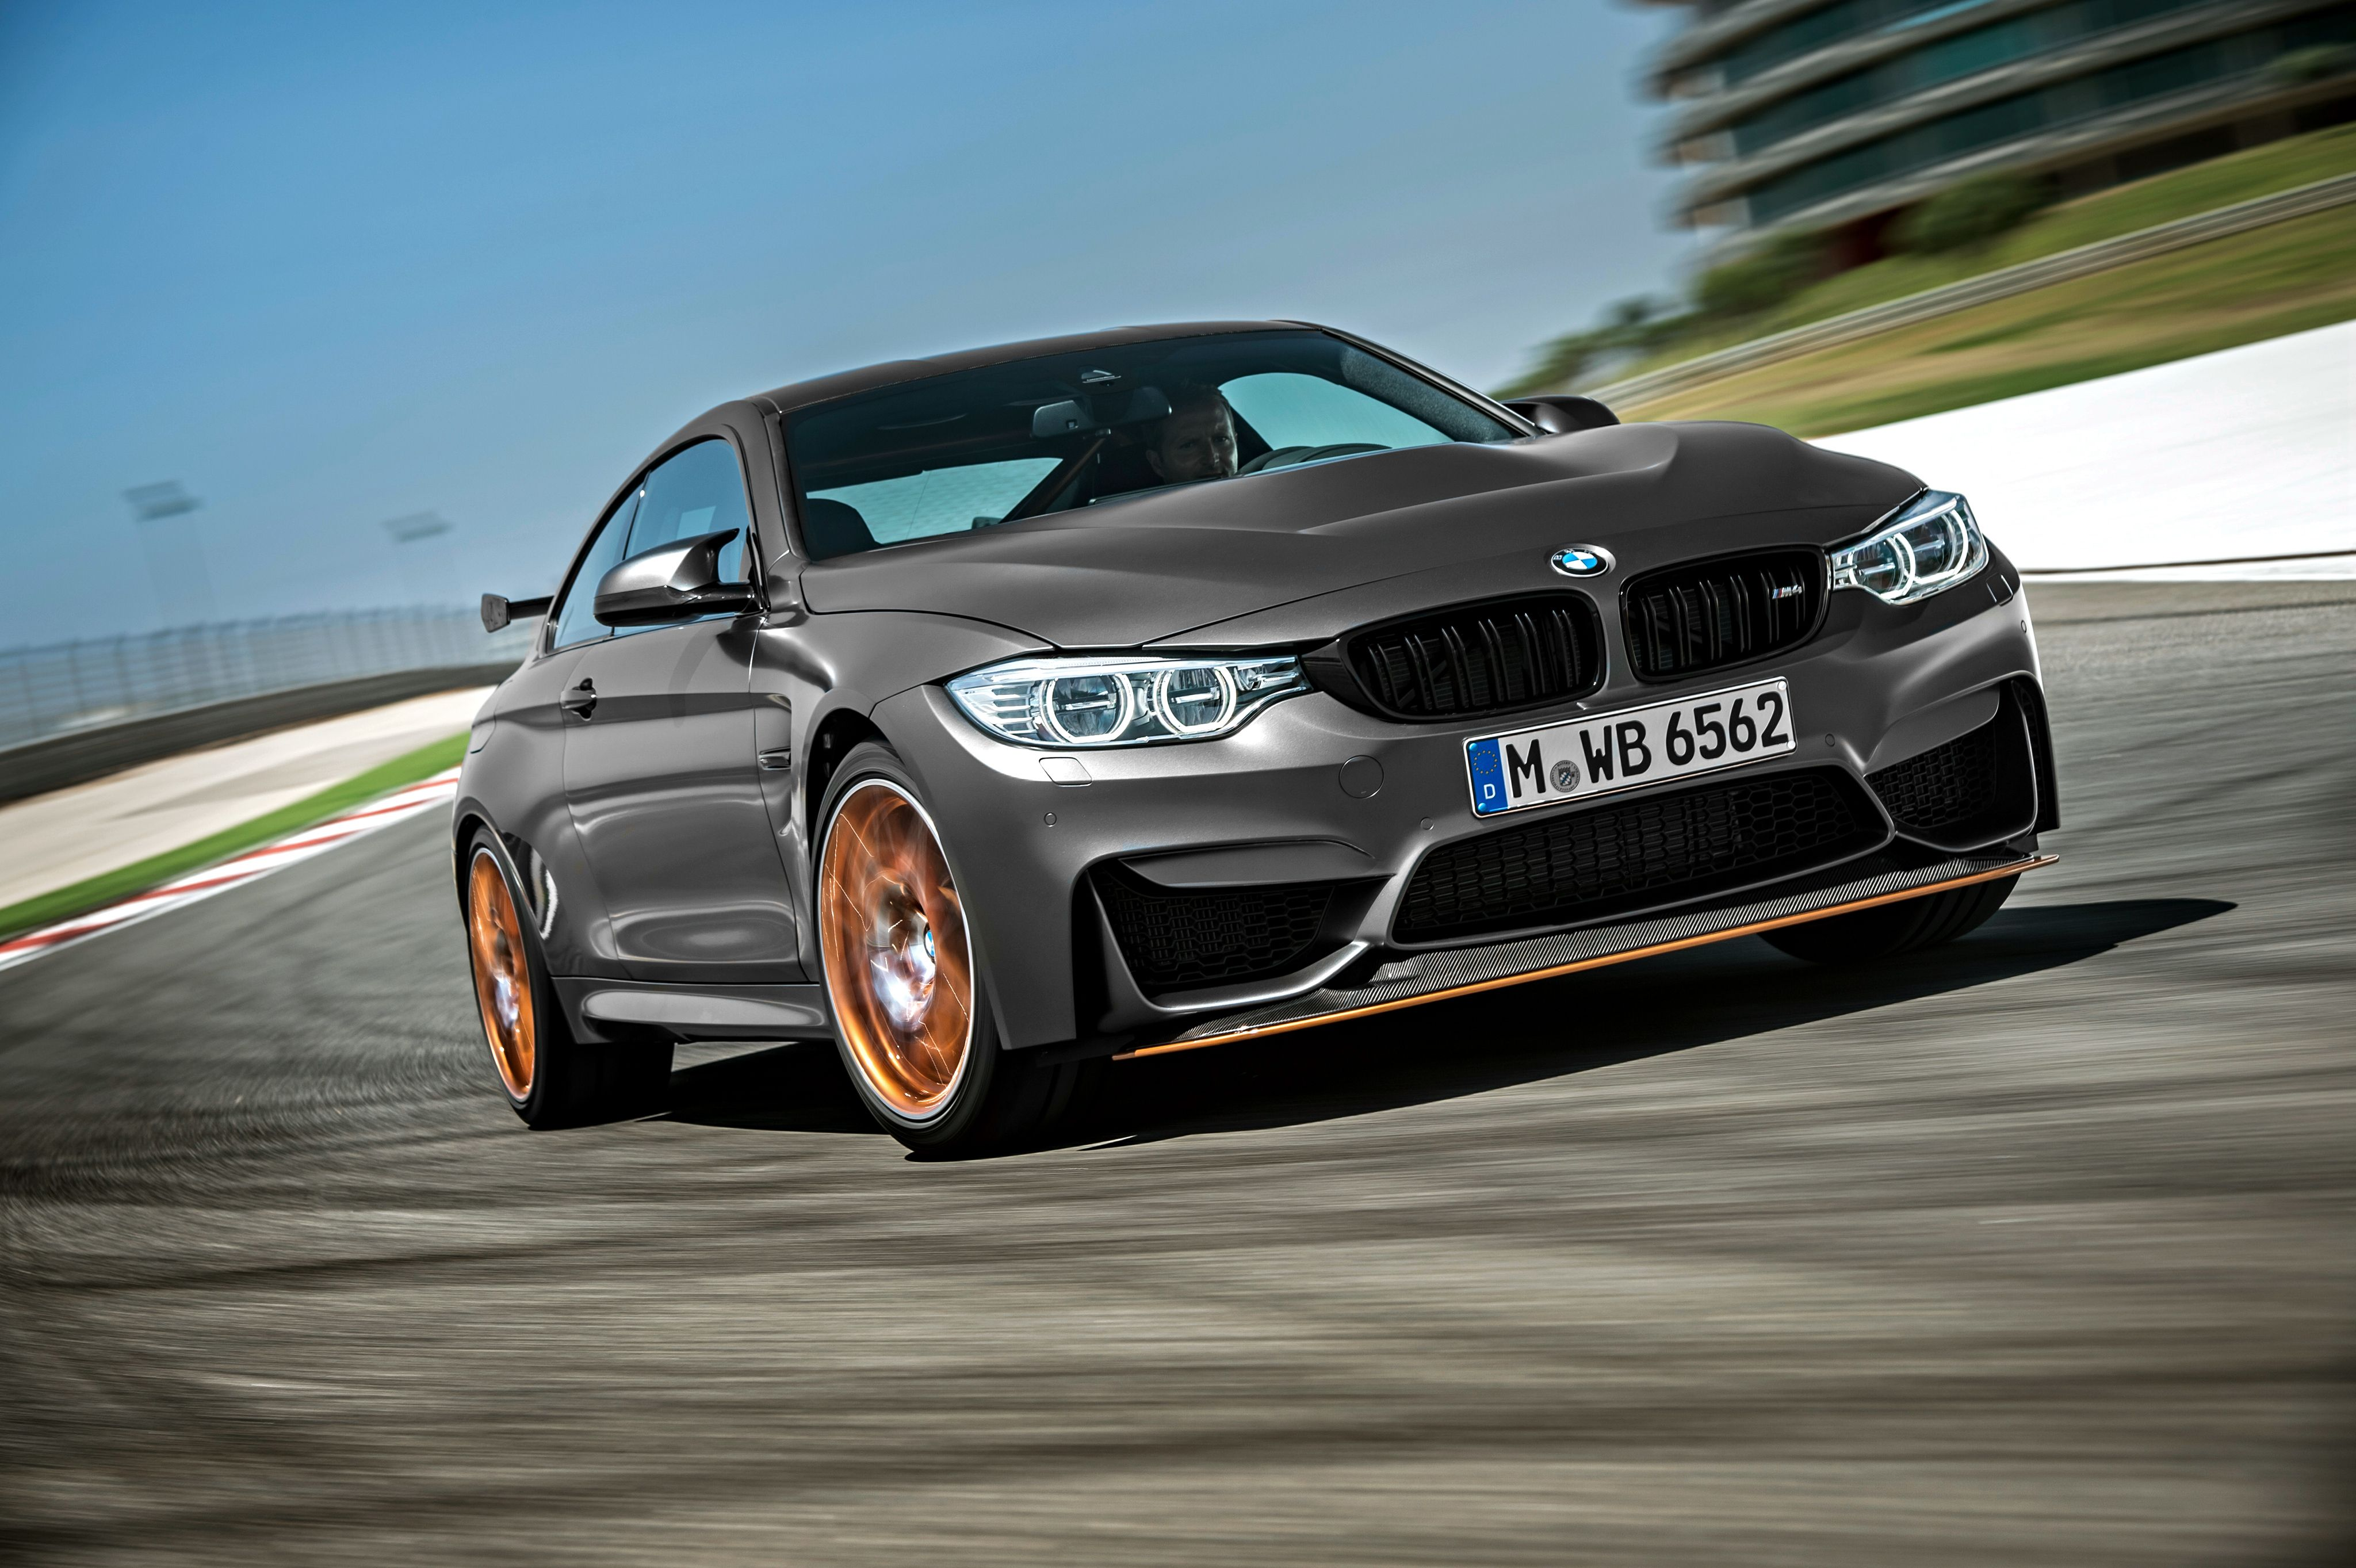 Bmw wallpapers high quality bmw backgrounds vdg hd wallpapers pinterest hd wallpaper and wallpaper